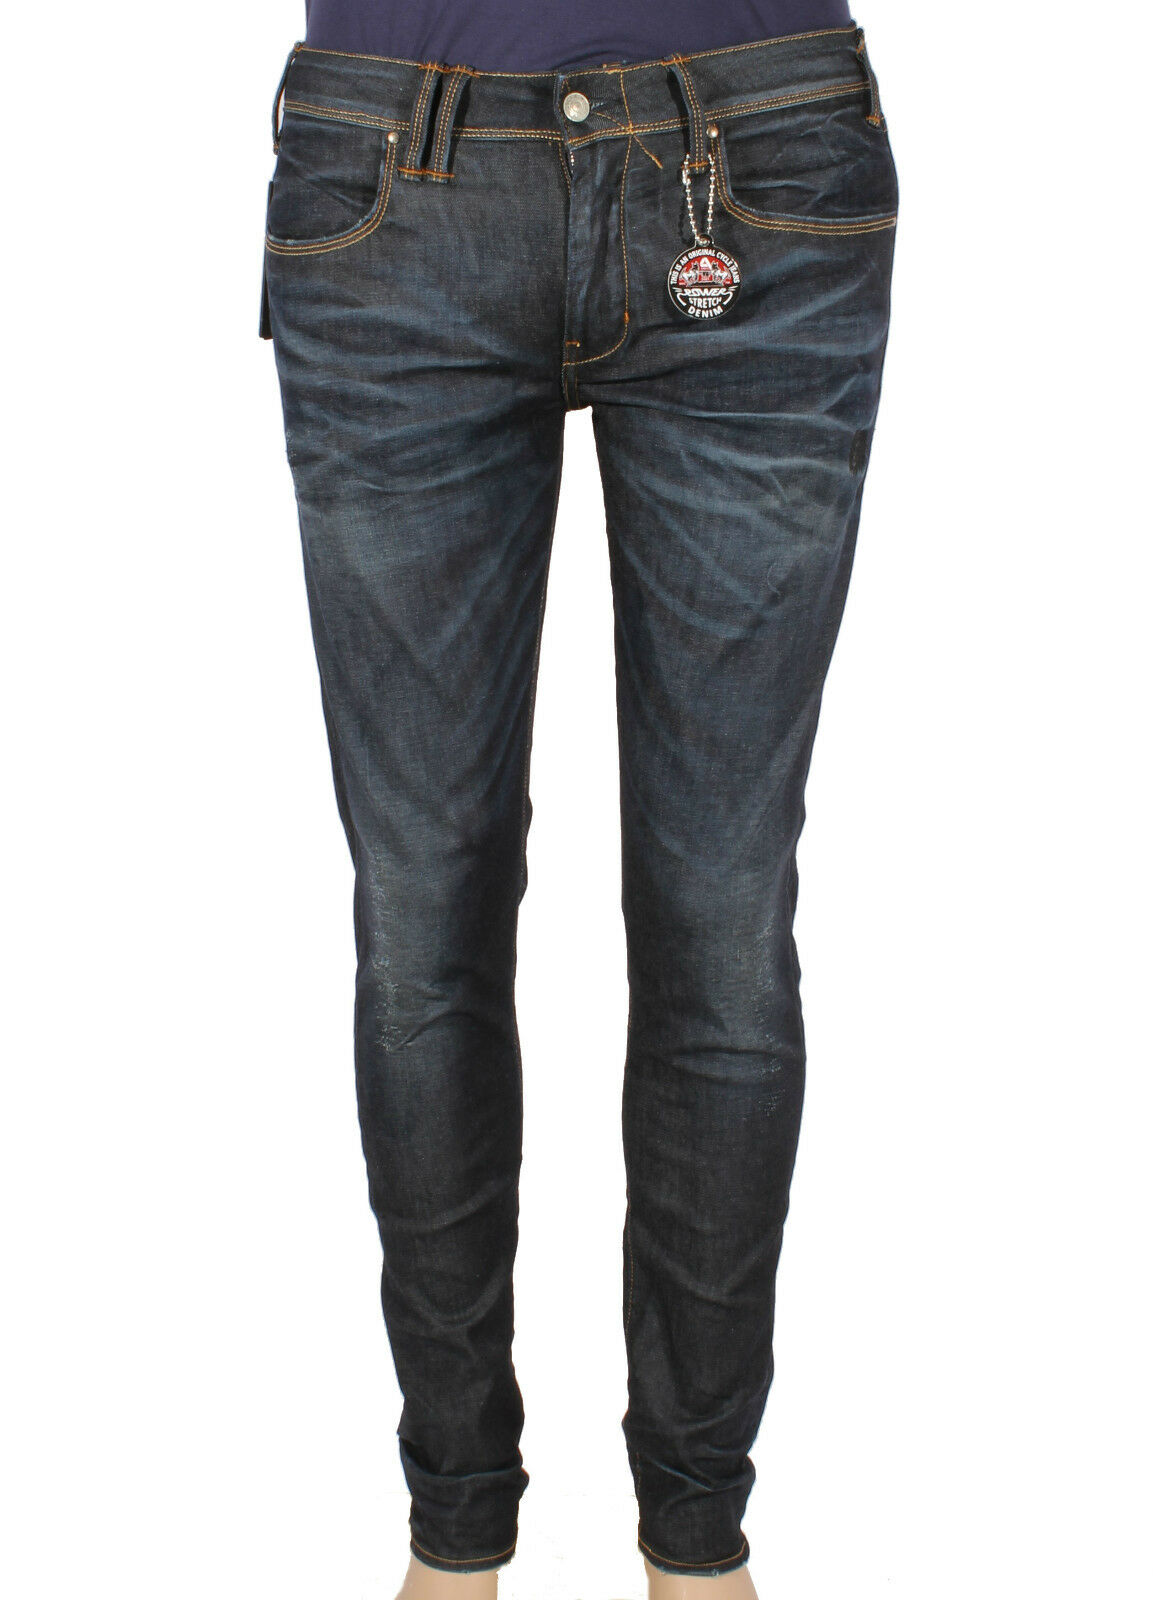 Vaqueros de hombre CYCLE MPT000 D975 superstretch compacto denim